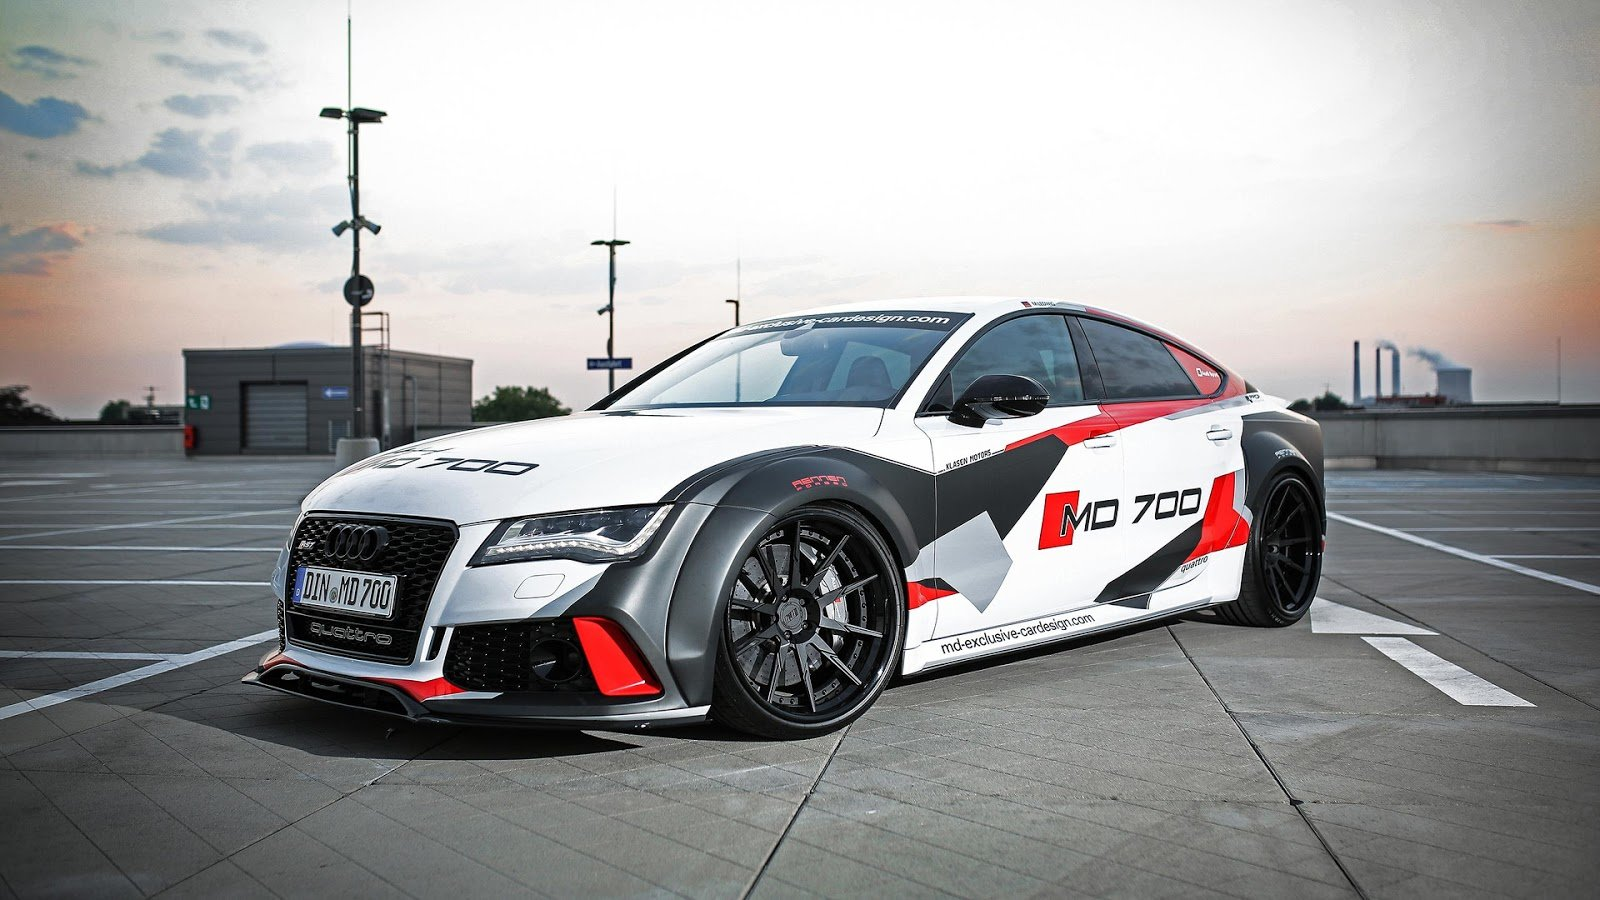 Latest Forget The Rs7 All You Need Is This Widebody Audi S7 Free Download